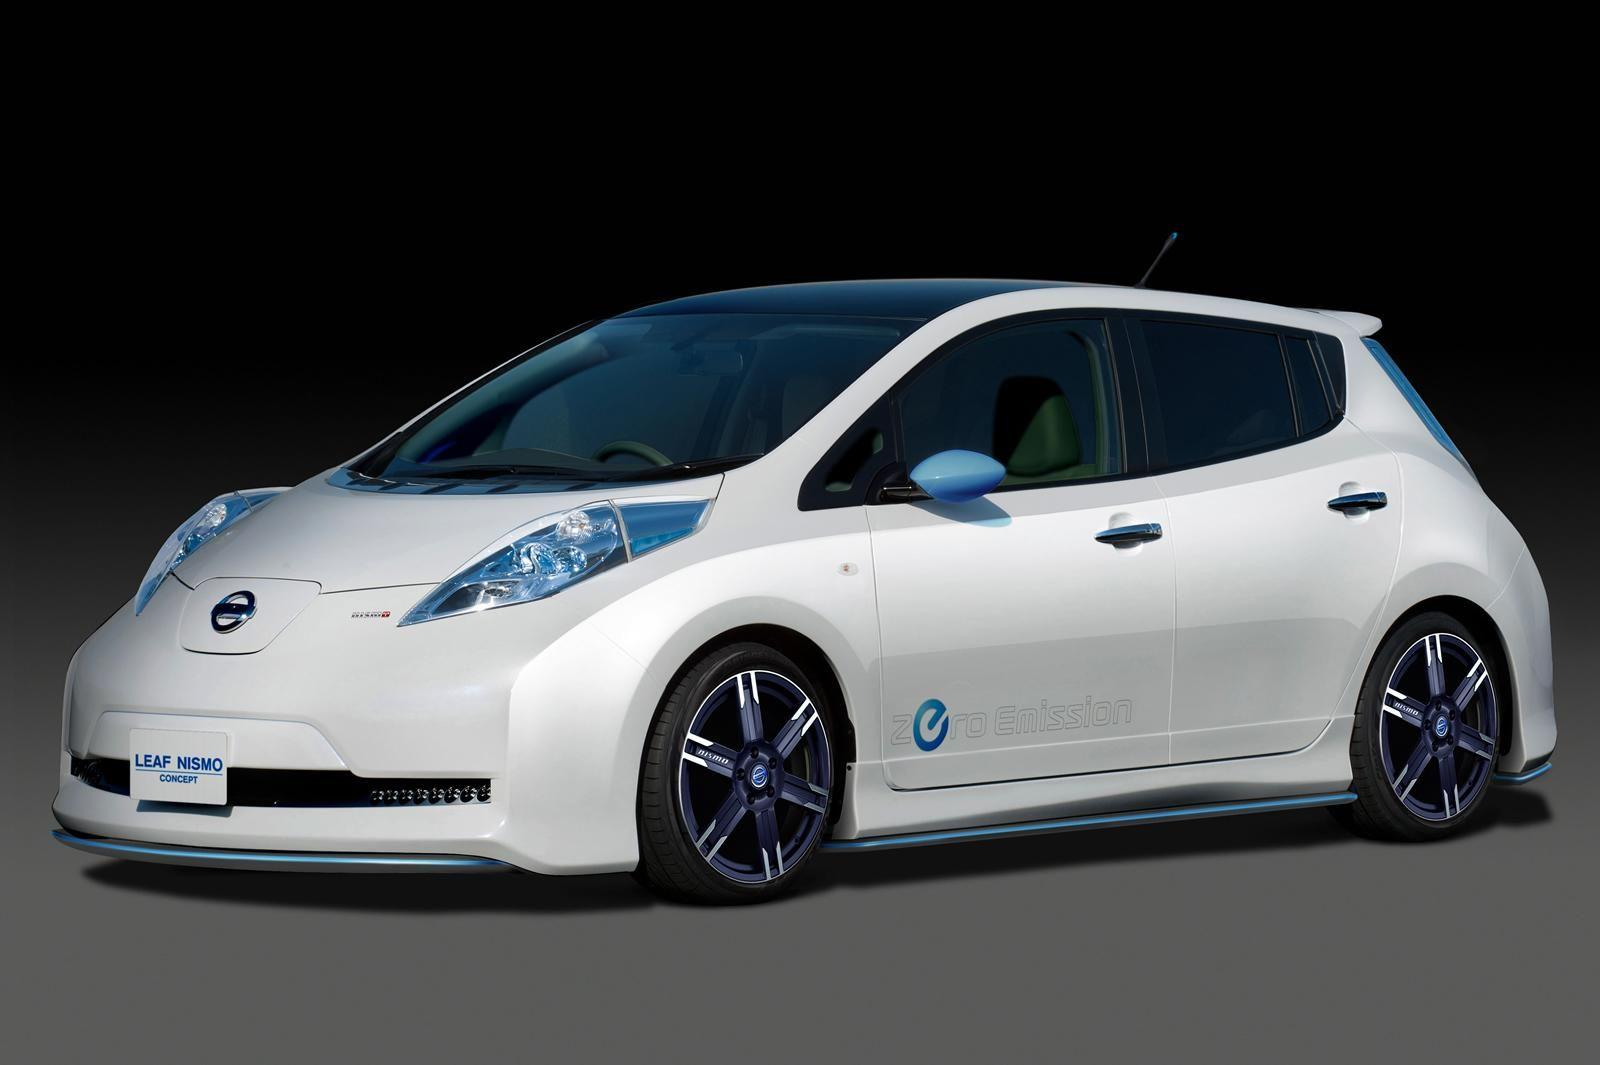 Nissan Leaf Nismo Concept 2011 photo 73477 pictures at high resolution